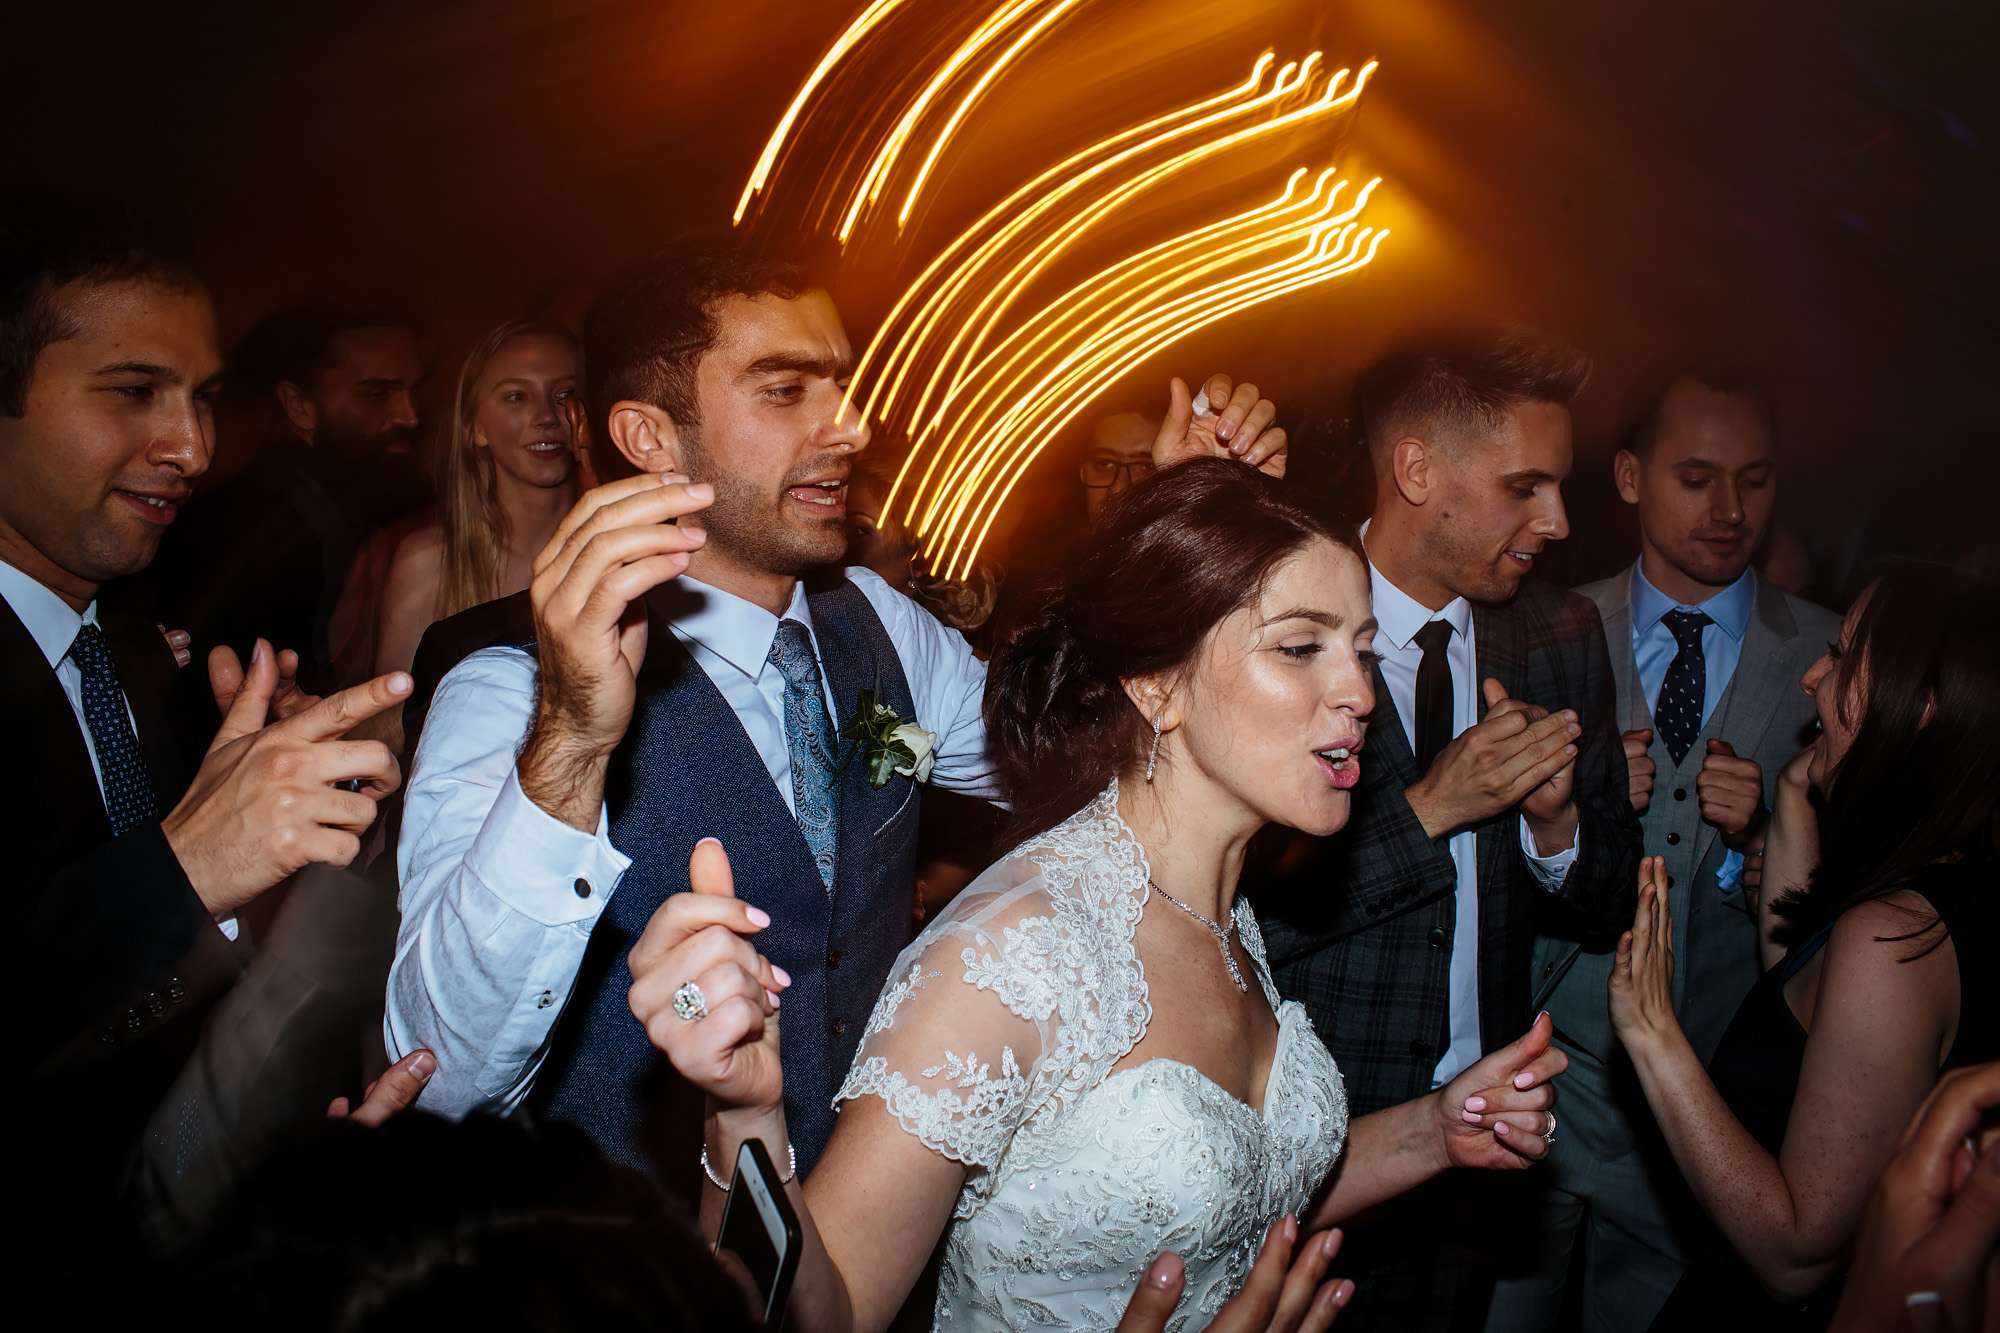 Bride and groom on the dance floor at their Yorkshire wedding